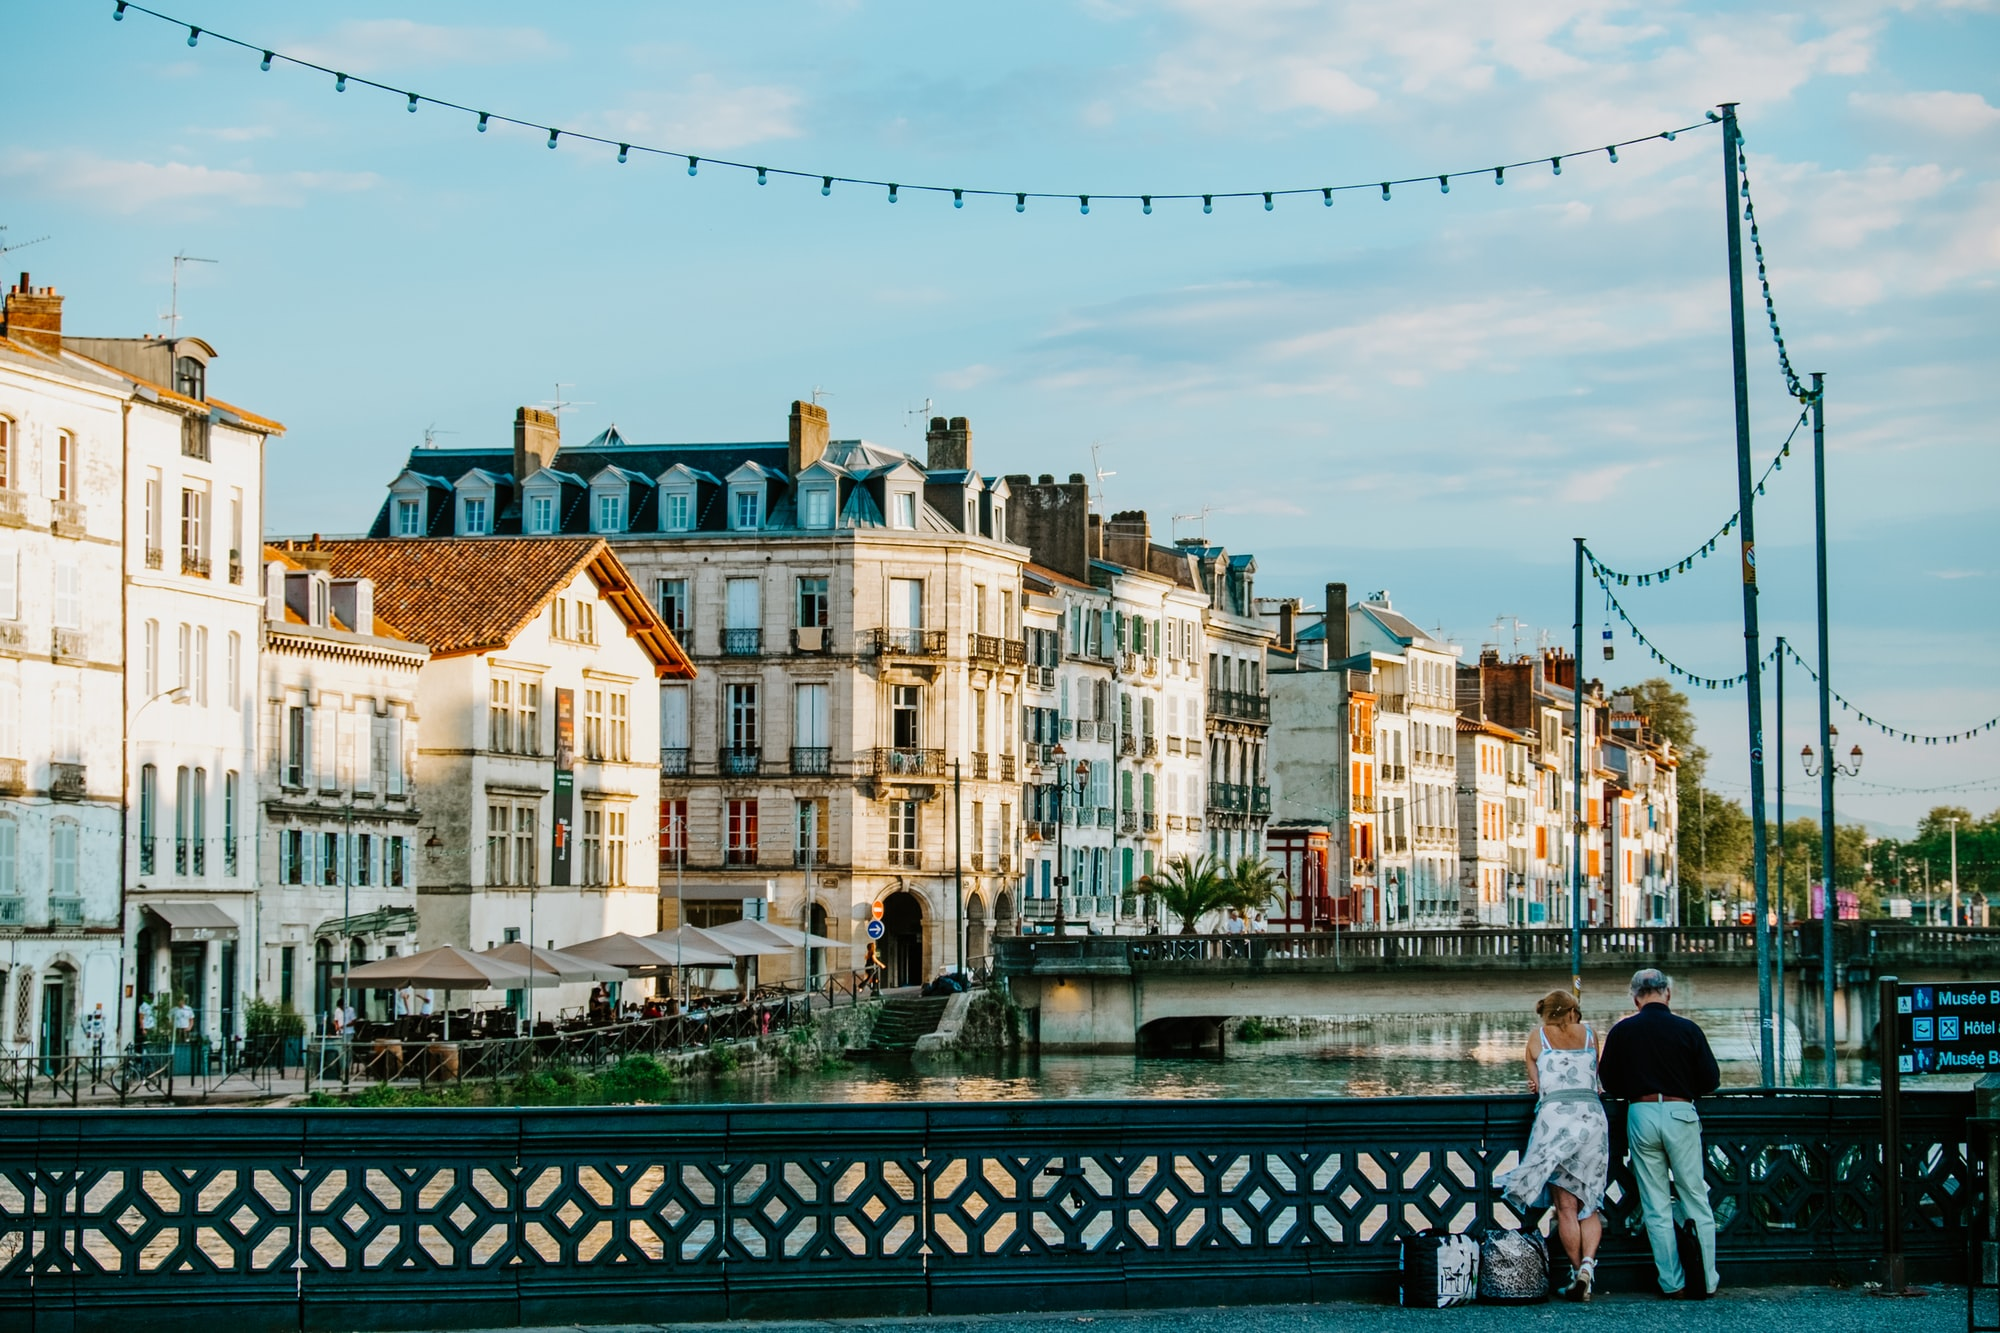 At 7:30 pm in early September there is a soft, golden light that hits the canal area of Bayonne, France and makes the old facades of the buildings glow.  A couple pauses on the iron bridge to admire the view.